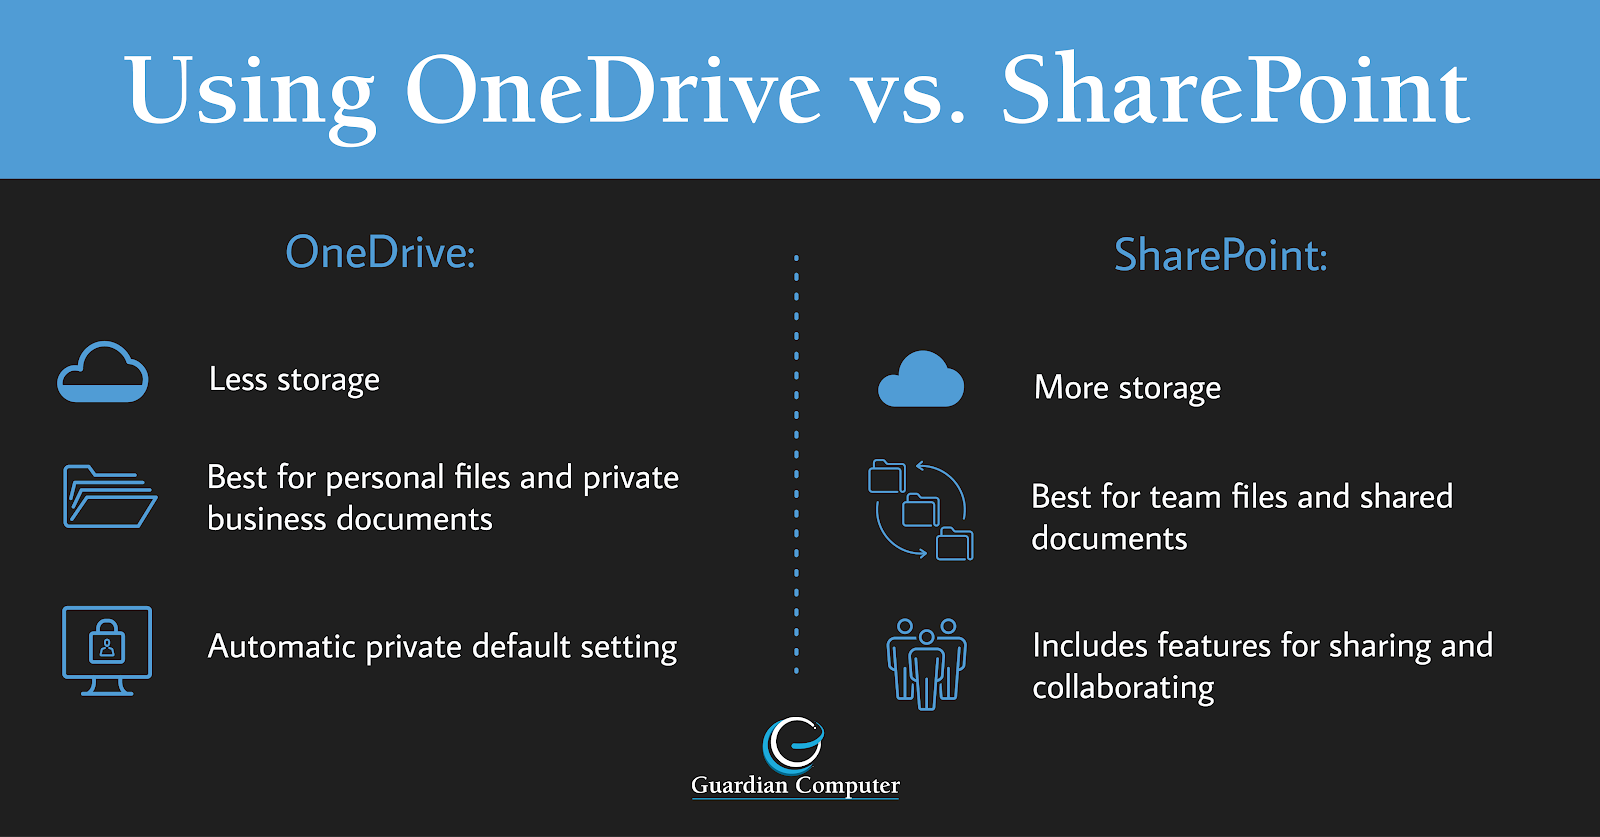 Keep reading our check out our infographic with tips for using OneDrive vs. SharePoint to make the most of Microsoft Azure and other products.